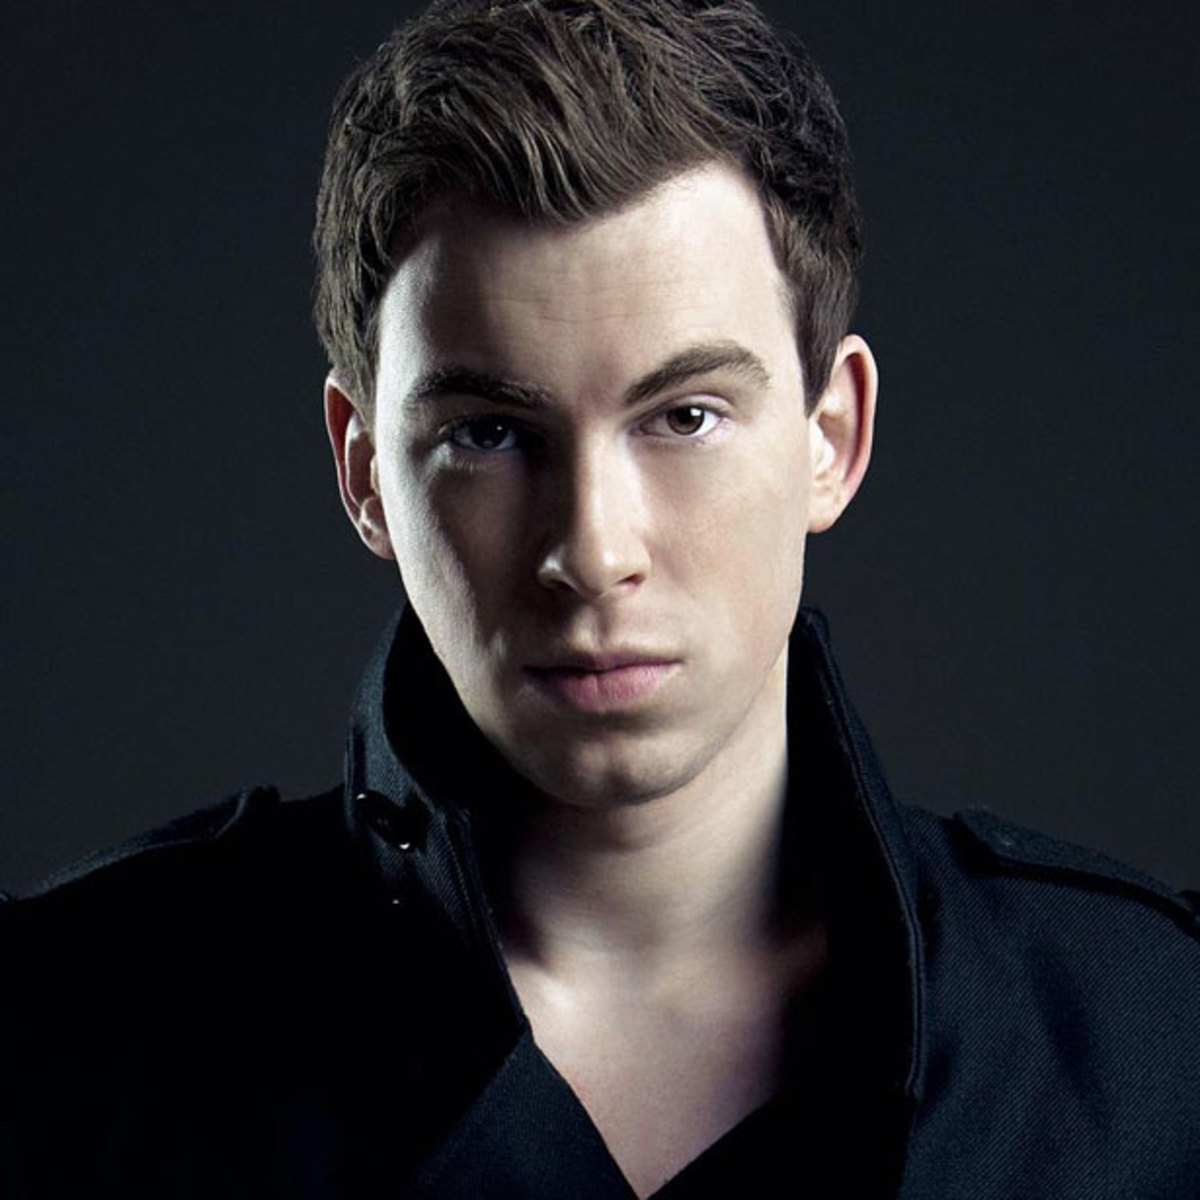 Watch: Hardwell Q&A Session / Miami Artist Series March 2013